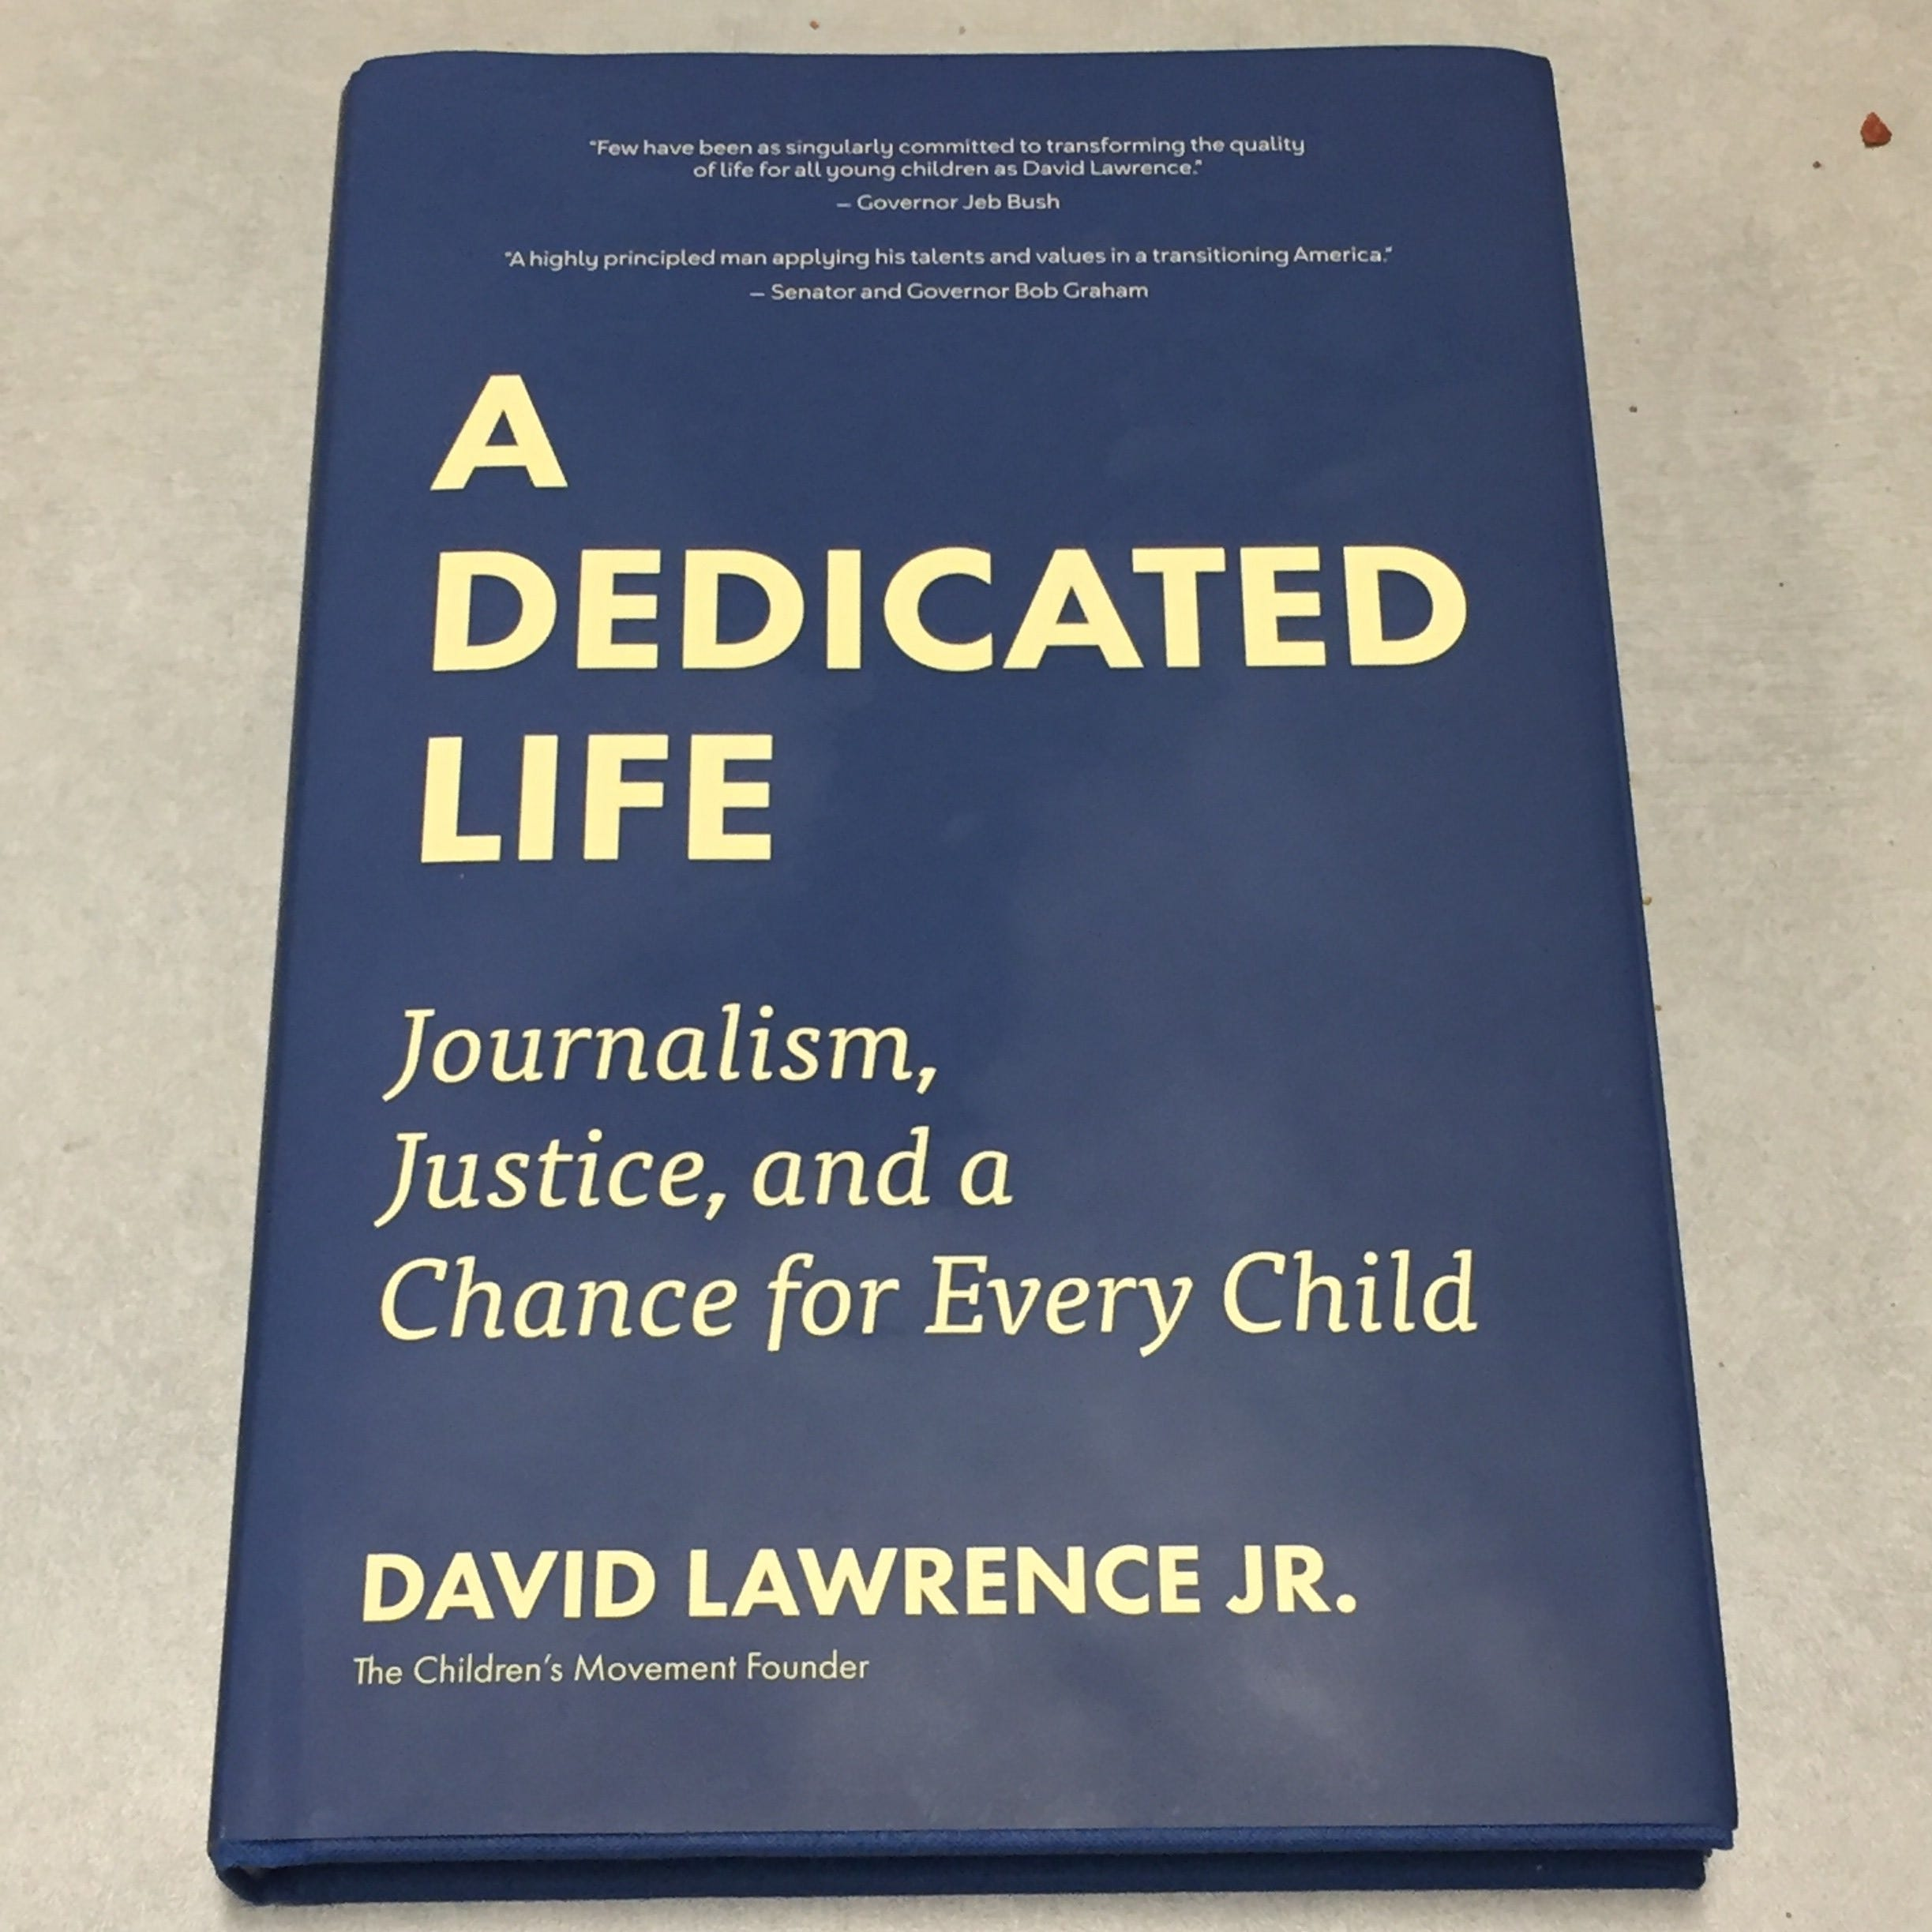 Ex-Miami Herald publisher David Lawrence details dedication in new memoir| Bill Cotterell